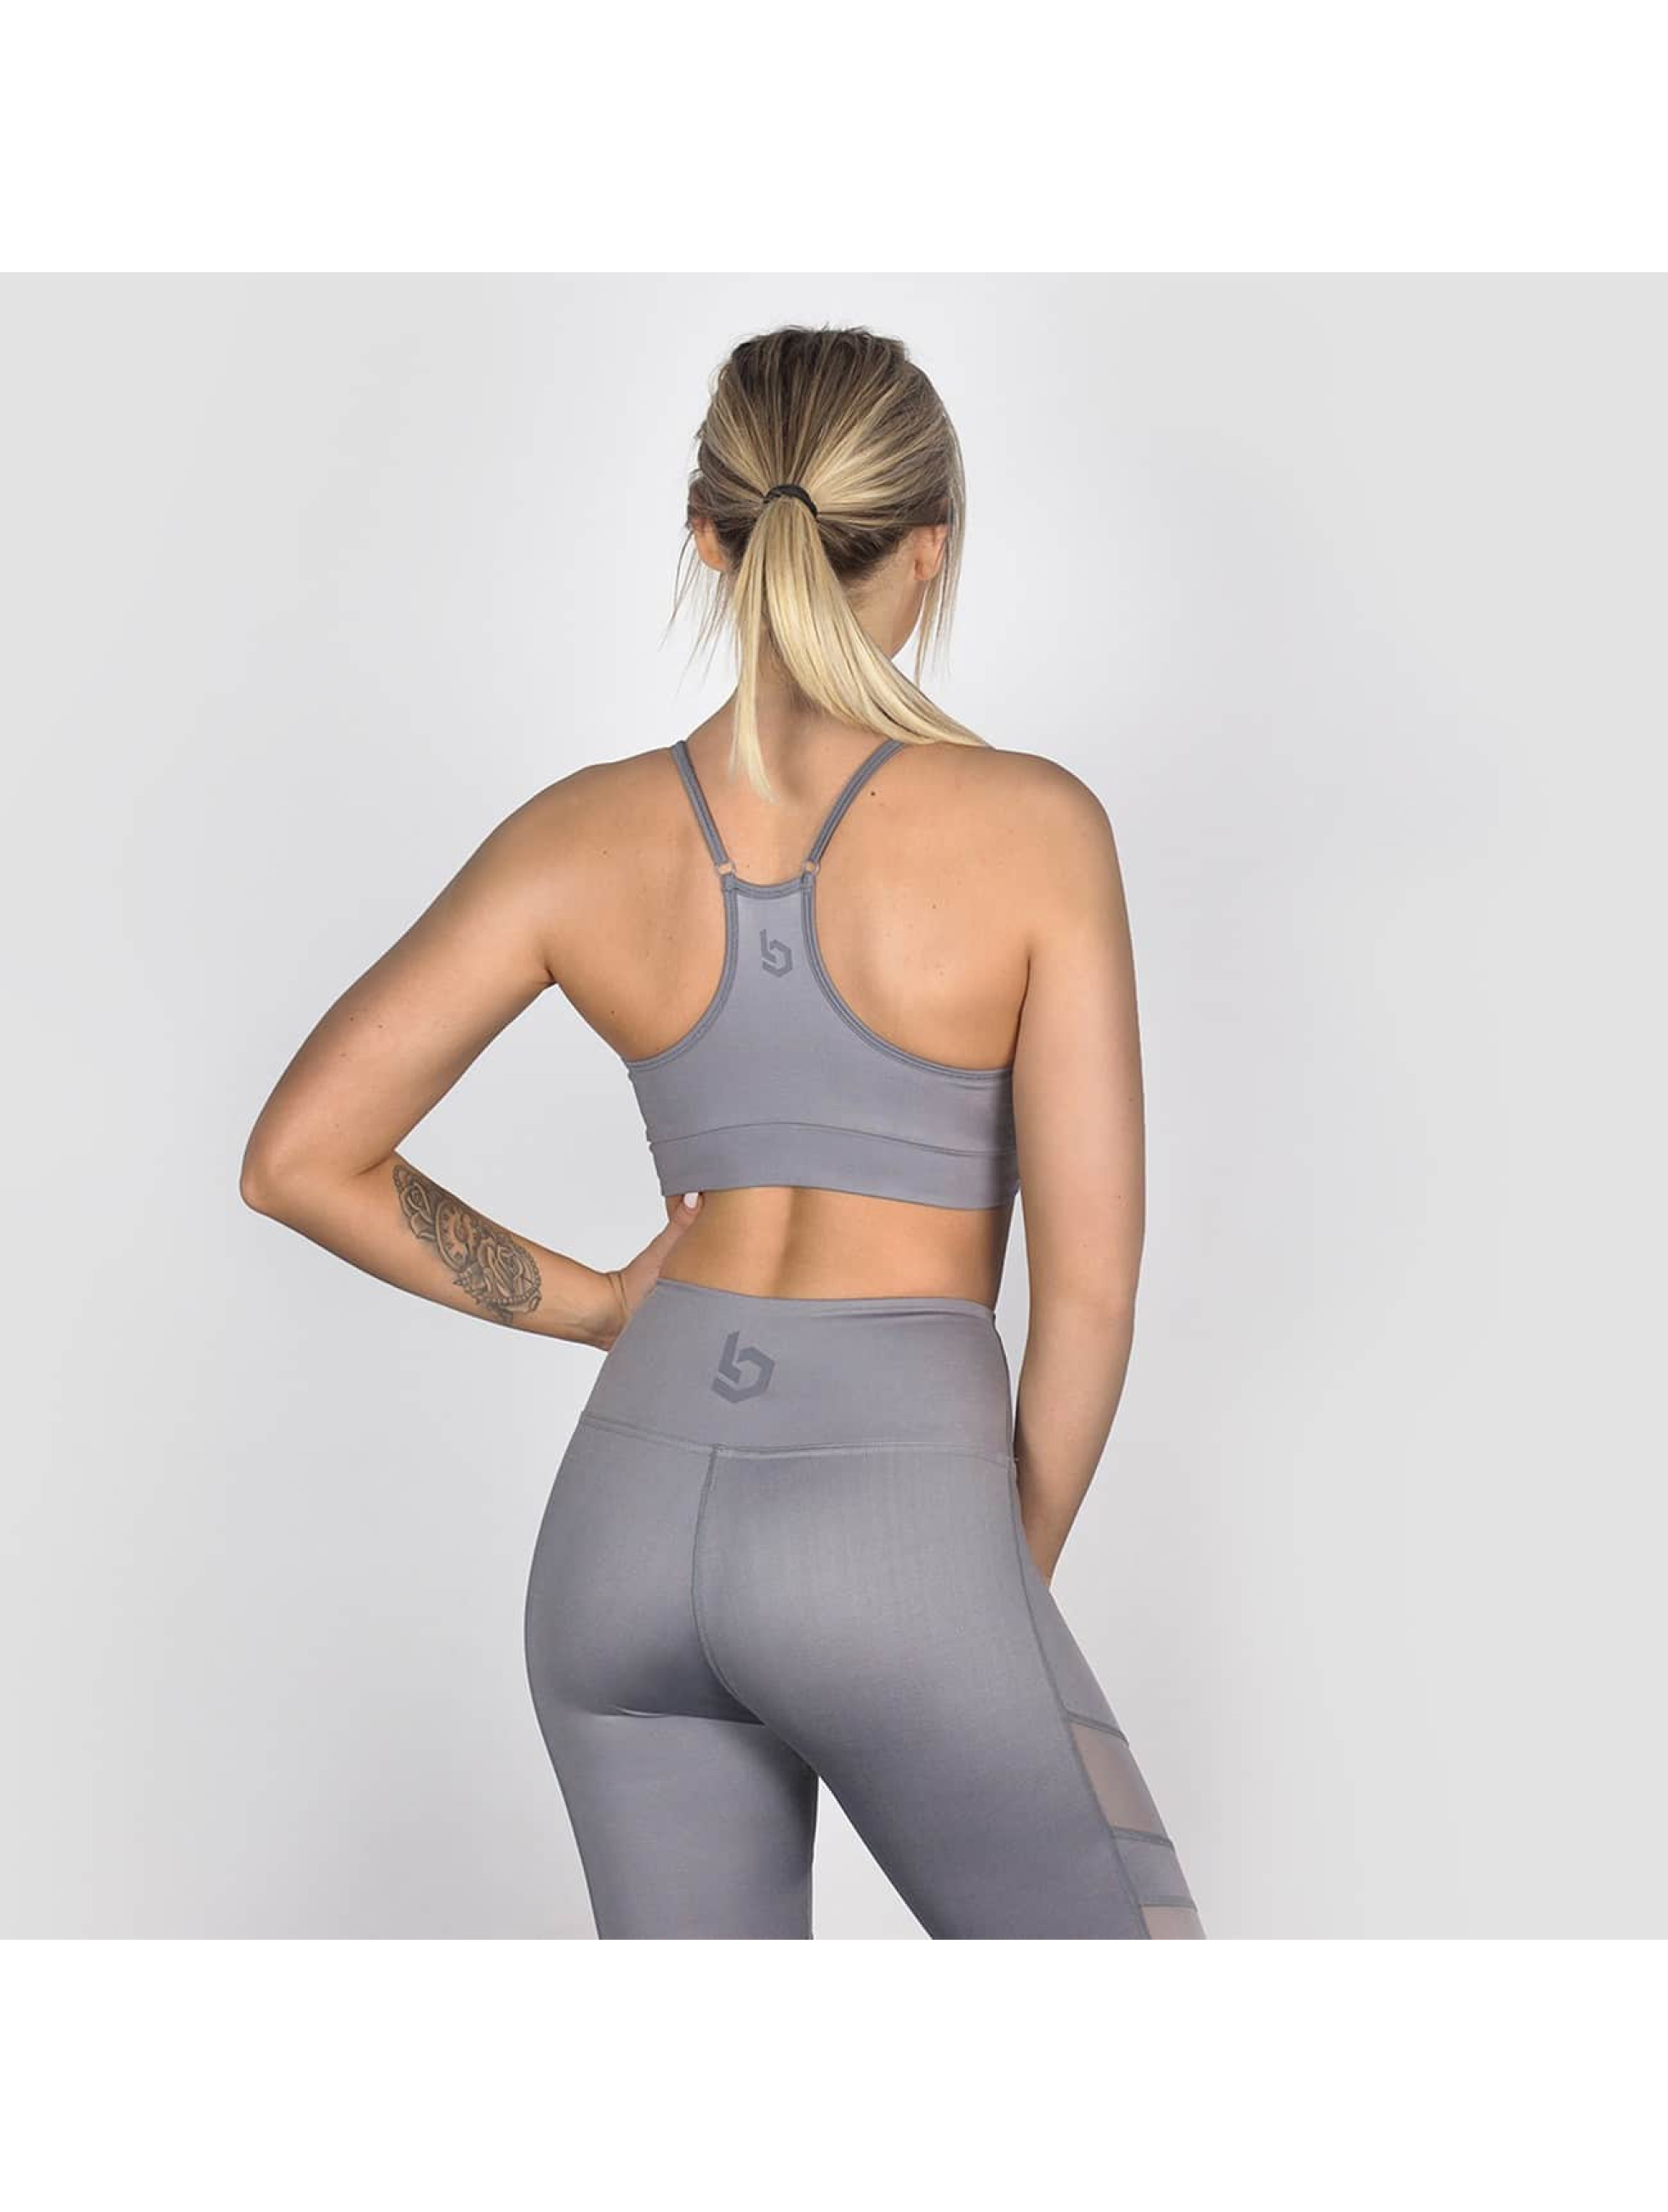 Beyond Limits Ropa interior Triangle gris